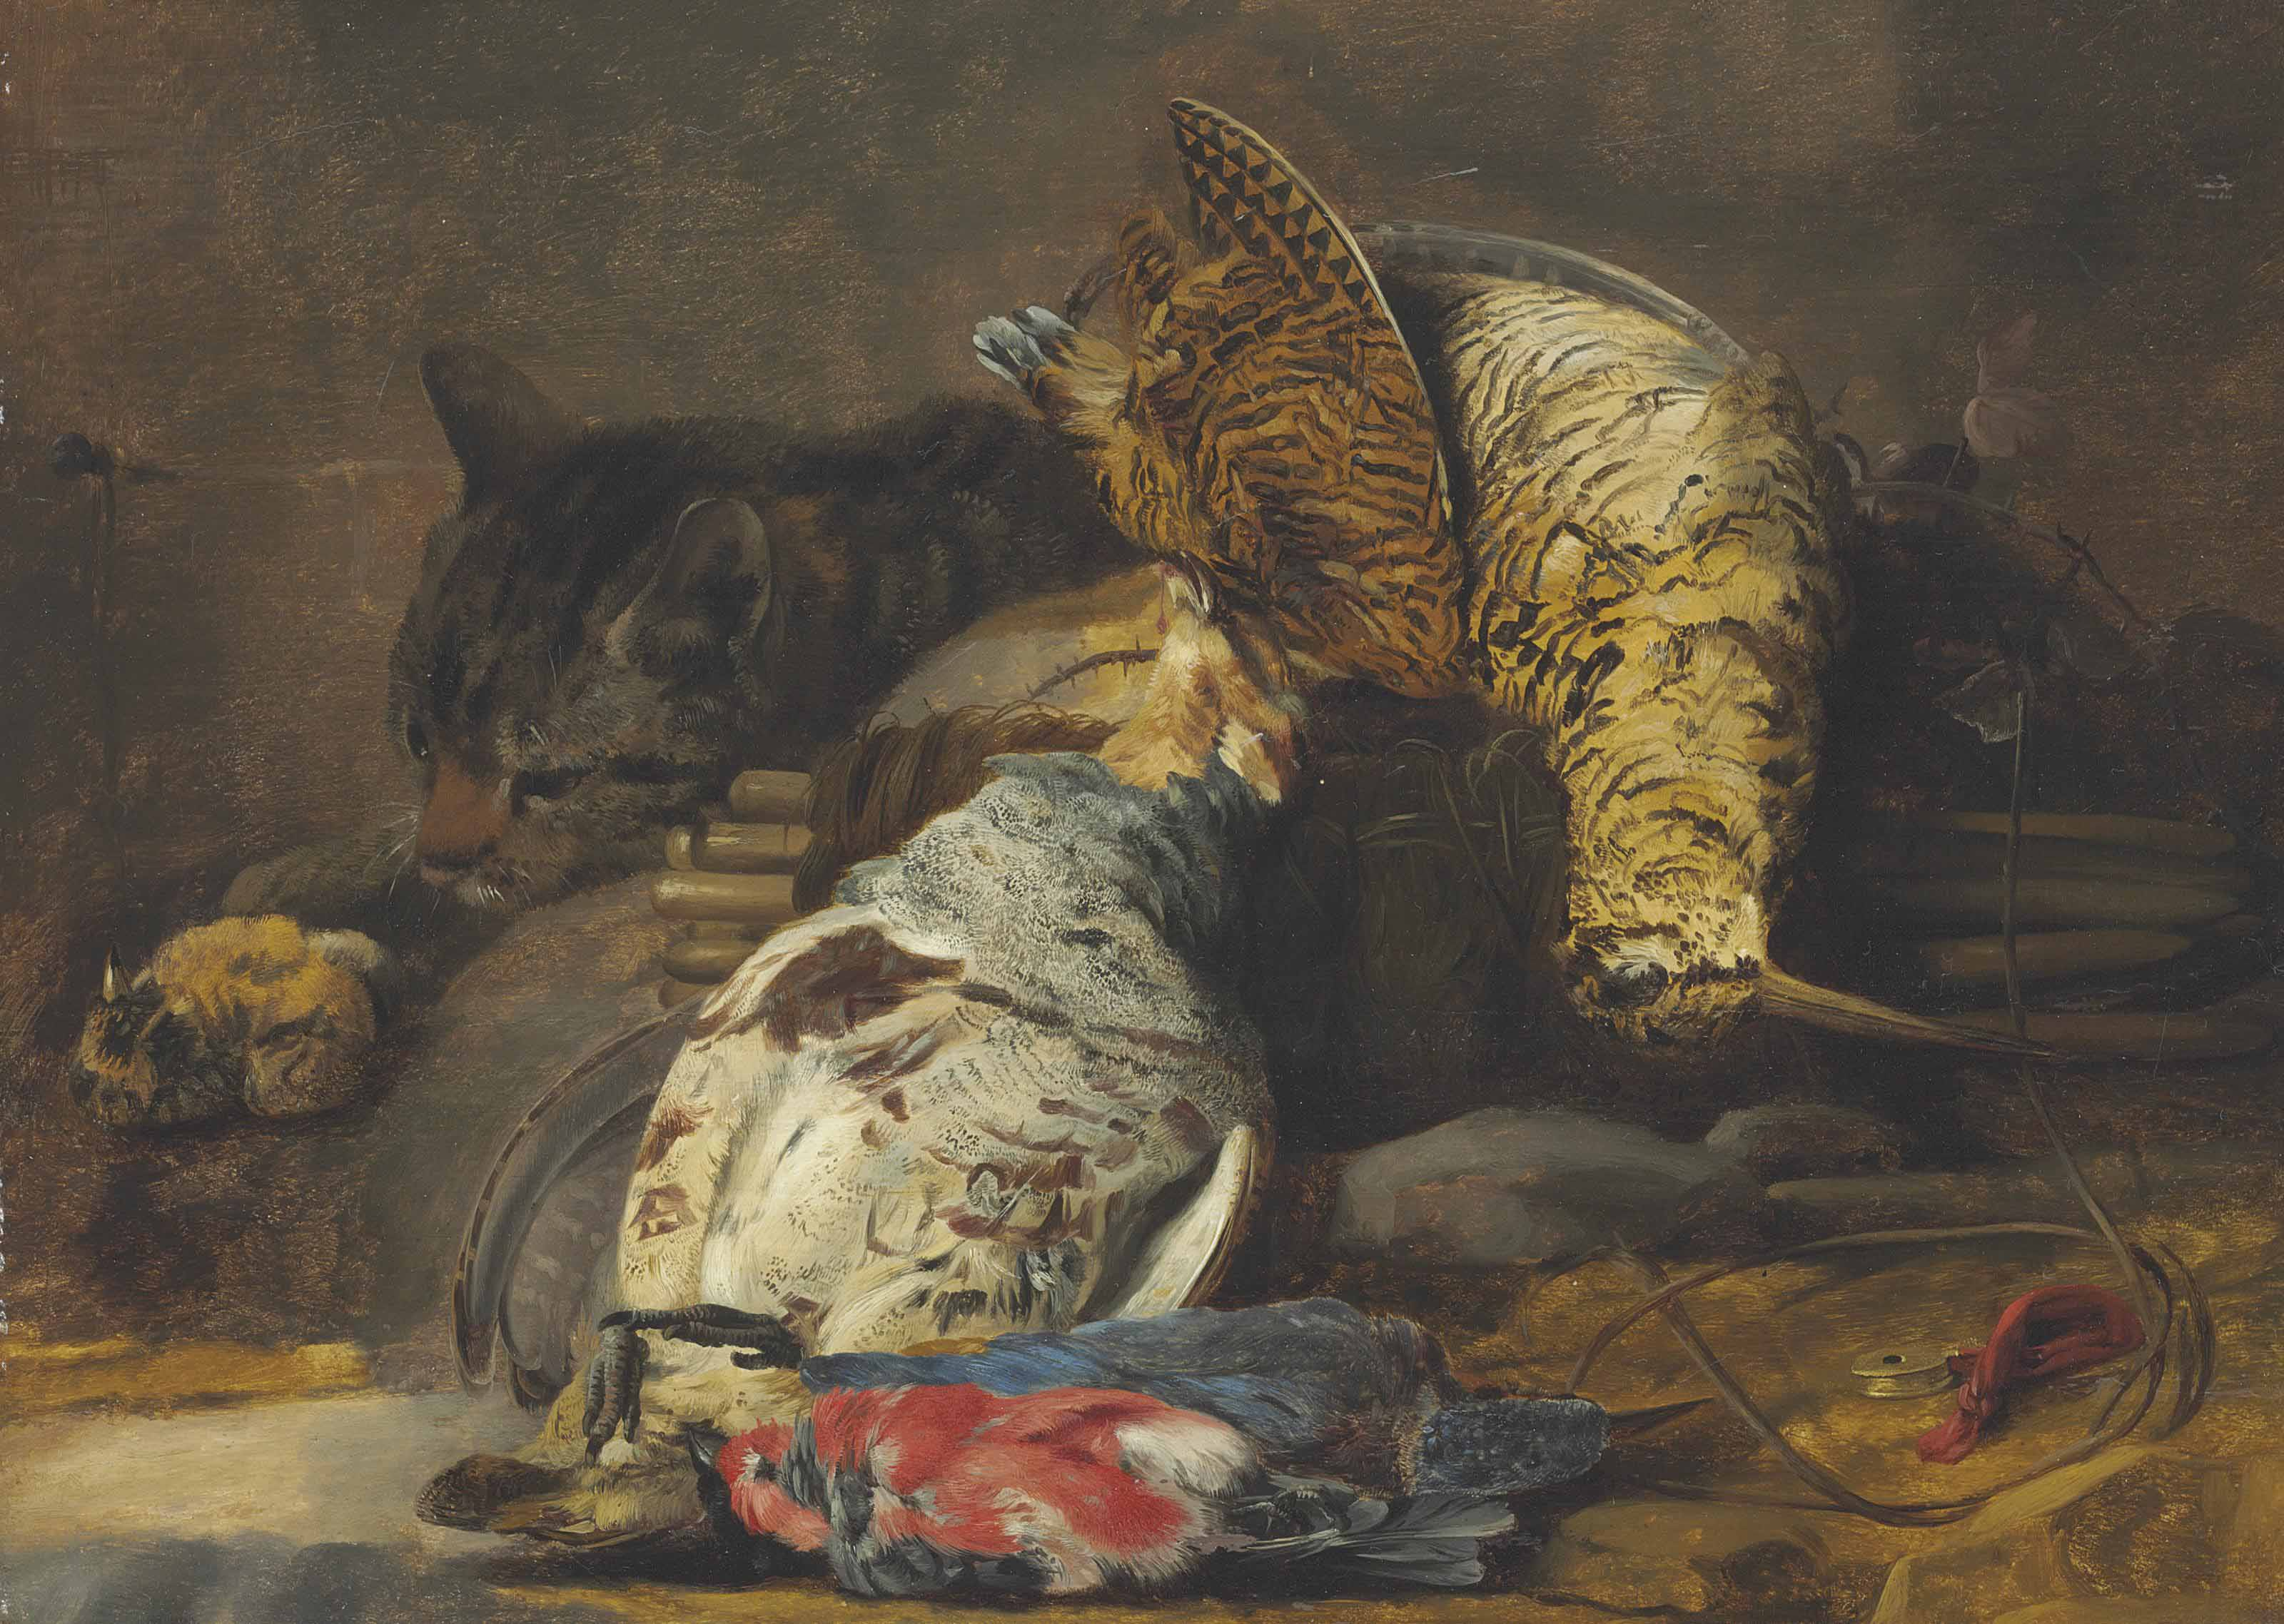 A woodcock, partridge, kingfisher, finches and a cat, with a decoy whistle and a wooden snare